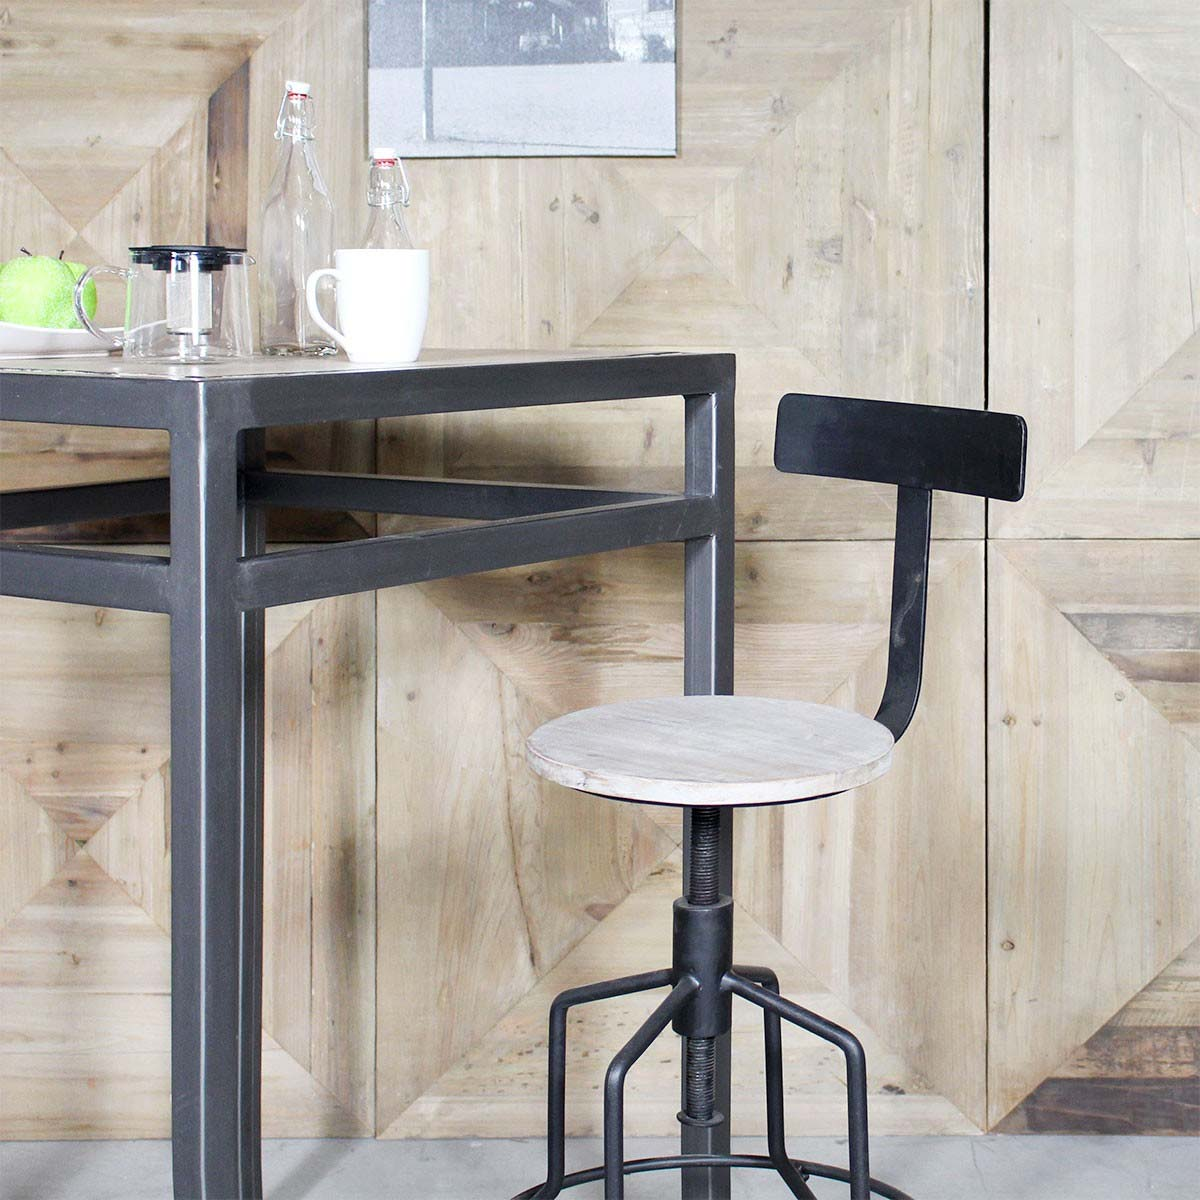 tabouret de bar industriel avec dossier. Black Bedroom Furniture Sets. Home Design Ideas